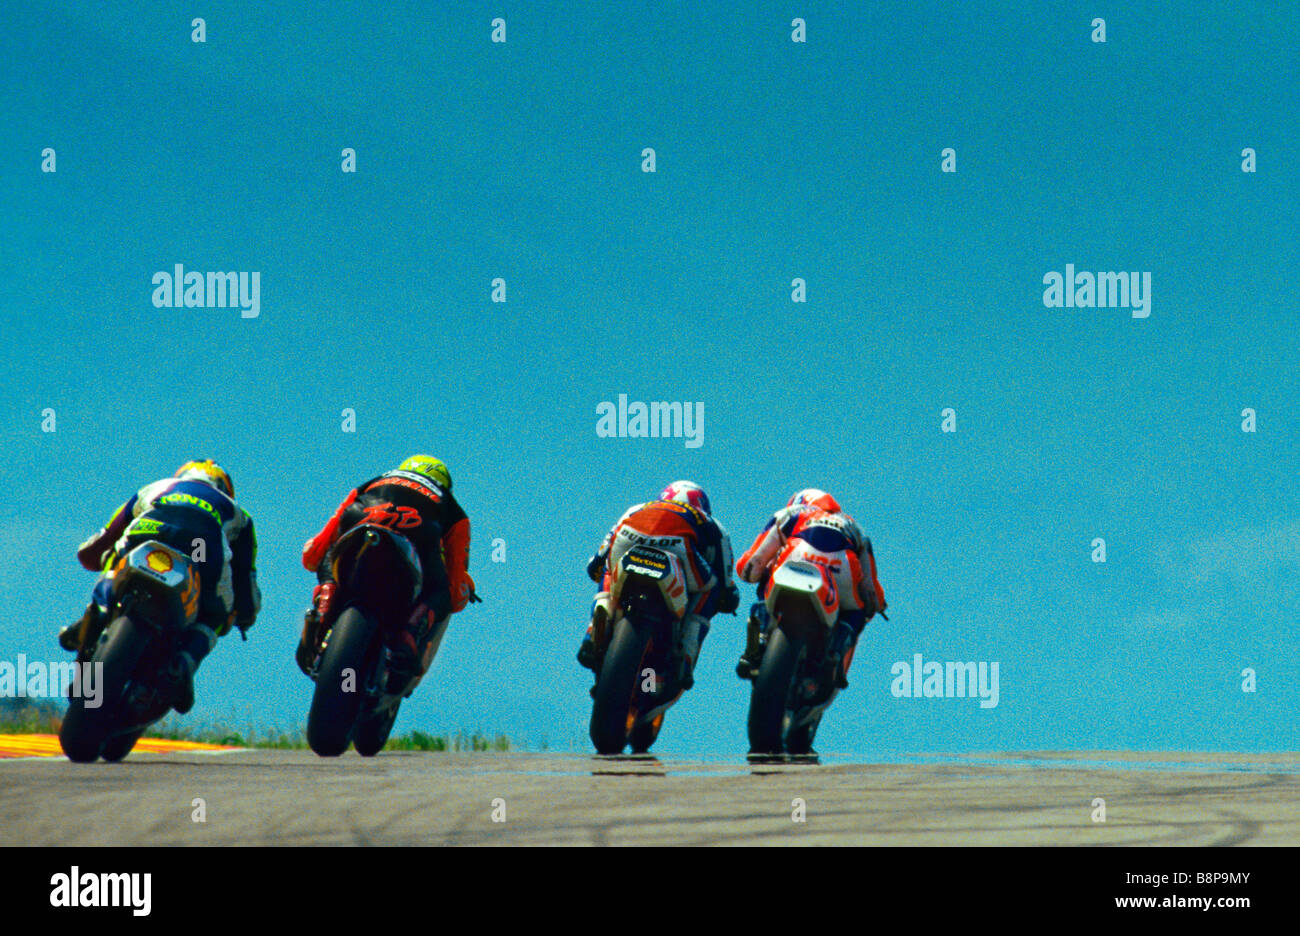 MOTO COMPETITION - Stock Image